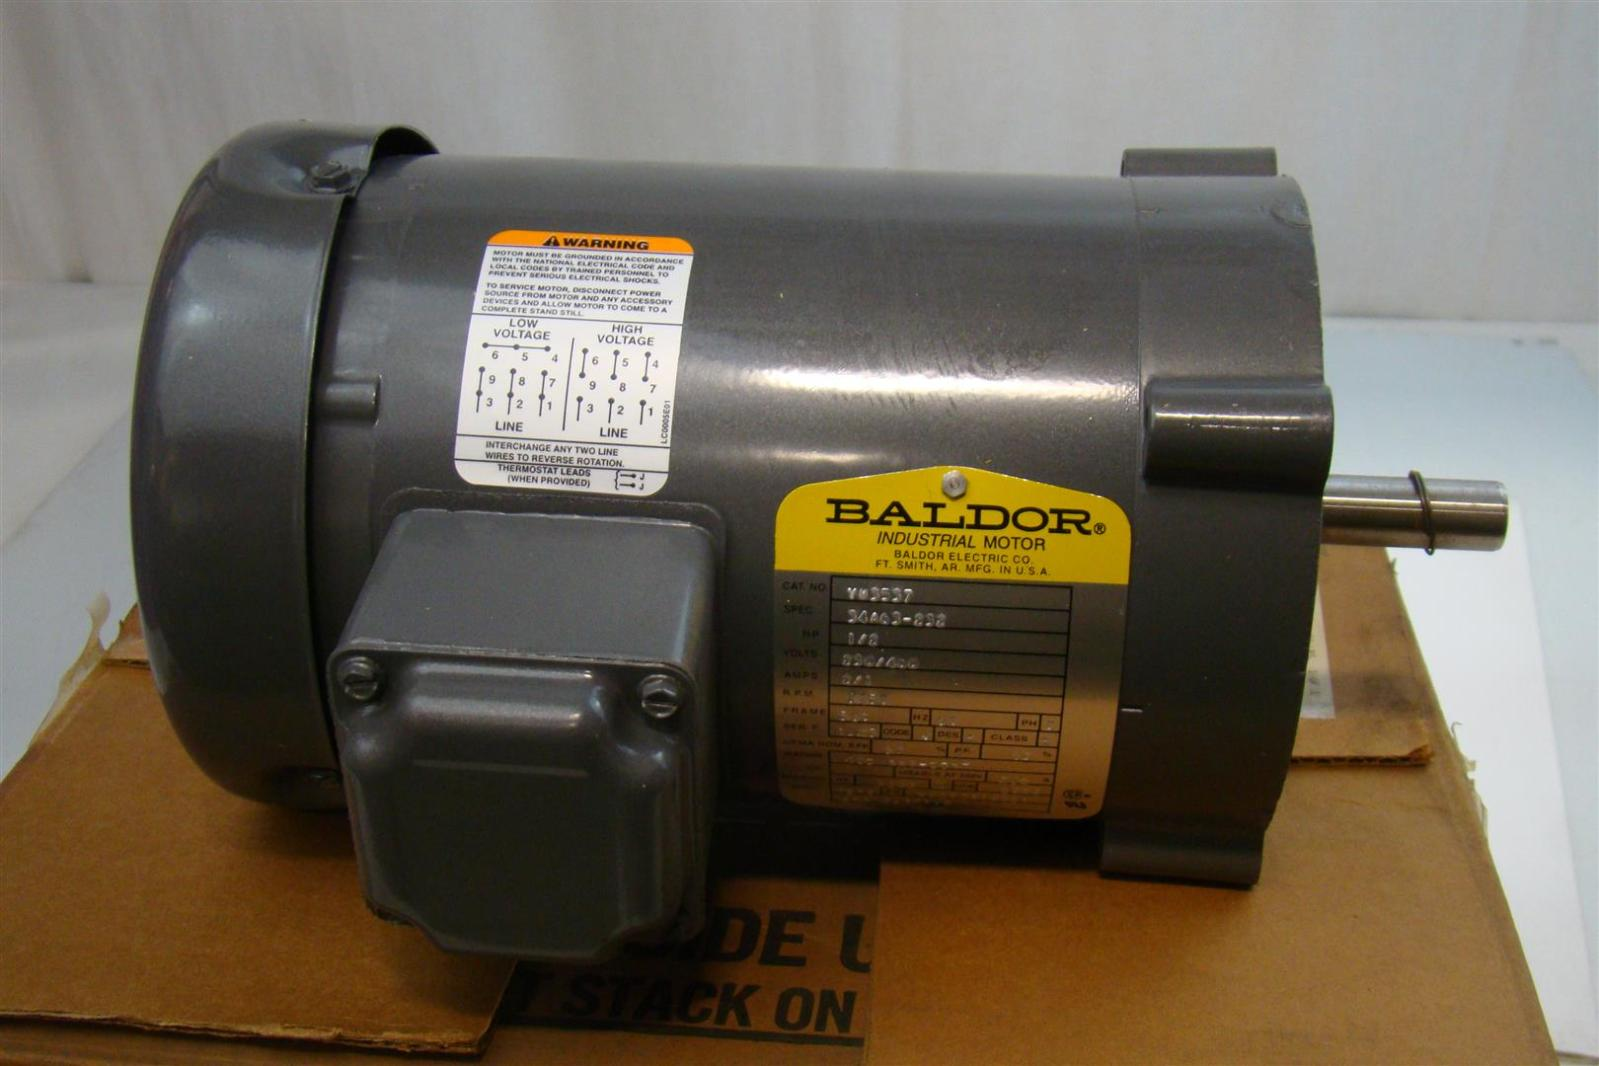 aew119 baldor electric co industrial electric motor 230 460v 2 1amp 345rpm 1 2hp vm3537 2?resize\\\\\\\\\\\\\\\\\\\\\\\\\\\\\\\=665%2C443 2 hp baldor motor wiring diagram schematic 2 wiring diagrams  at panicattacktreatment.co